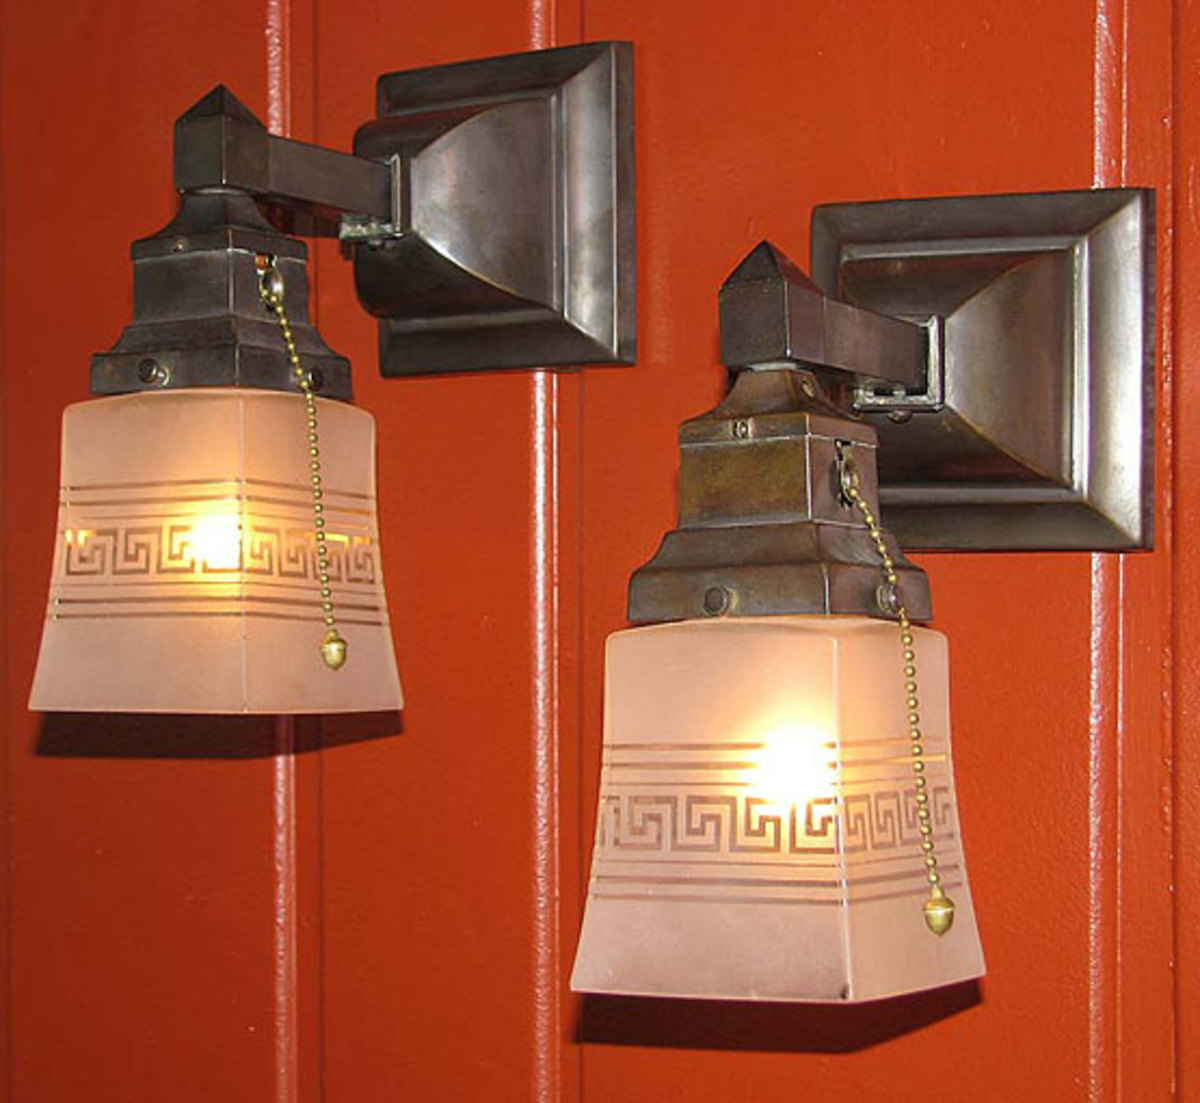 Find antique lighting with original glass; sconces from Materials Unlimited have vintage etched shades.